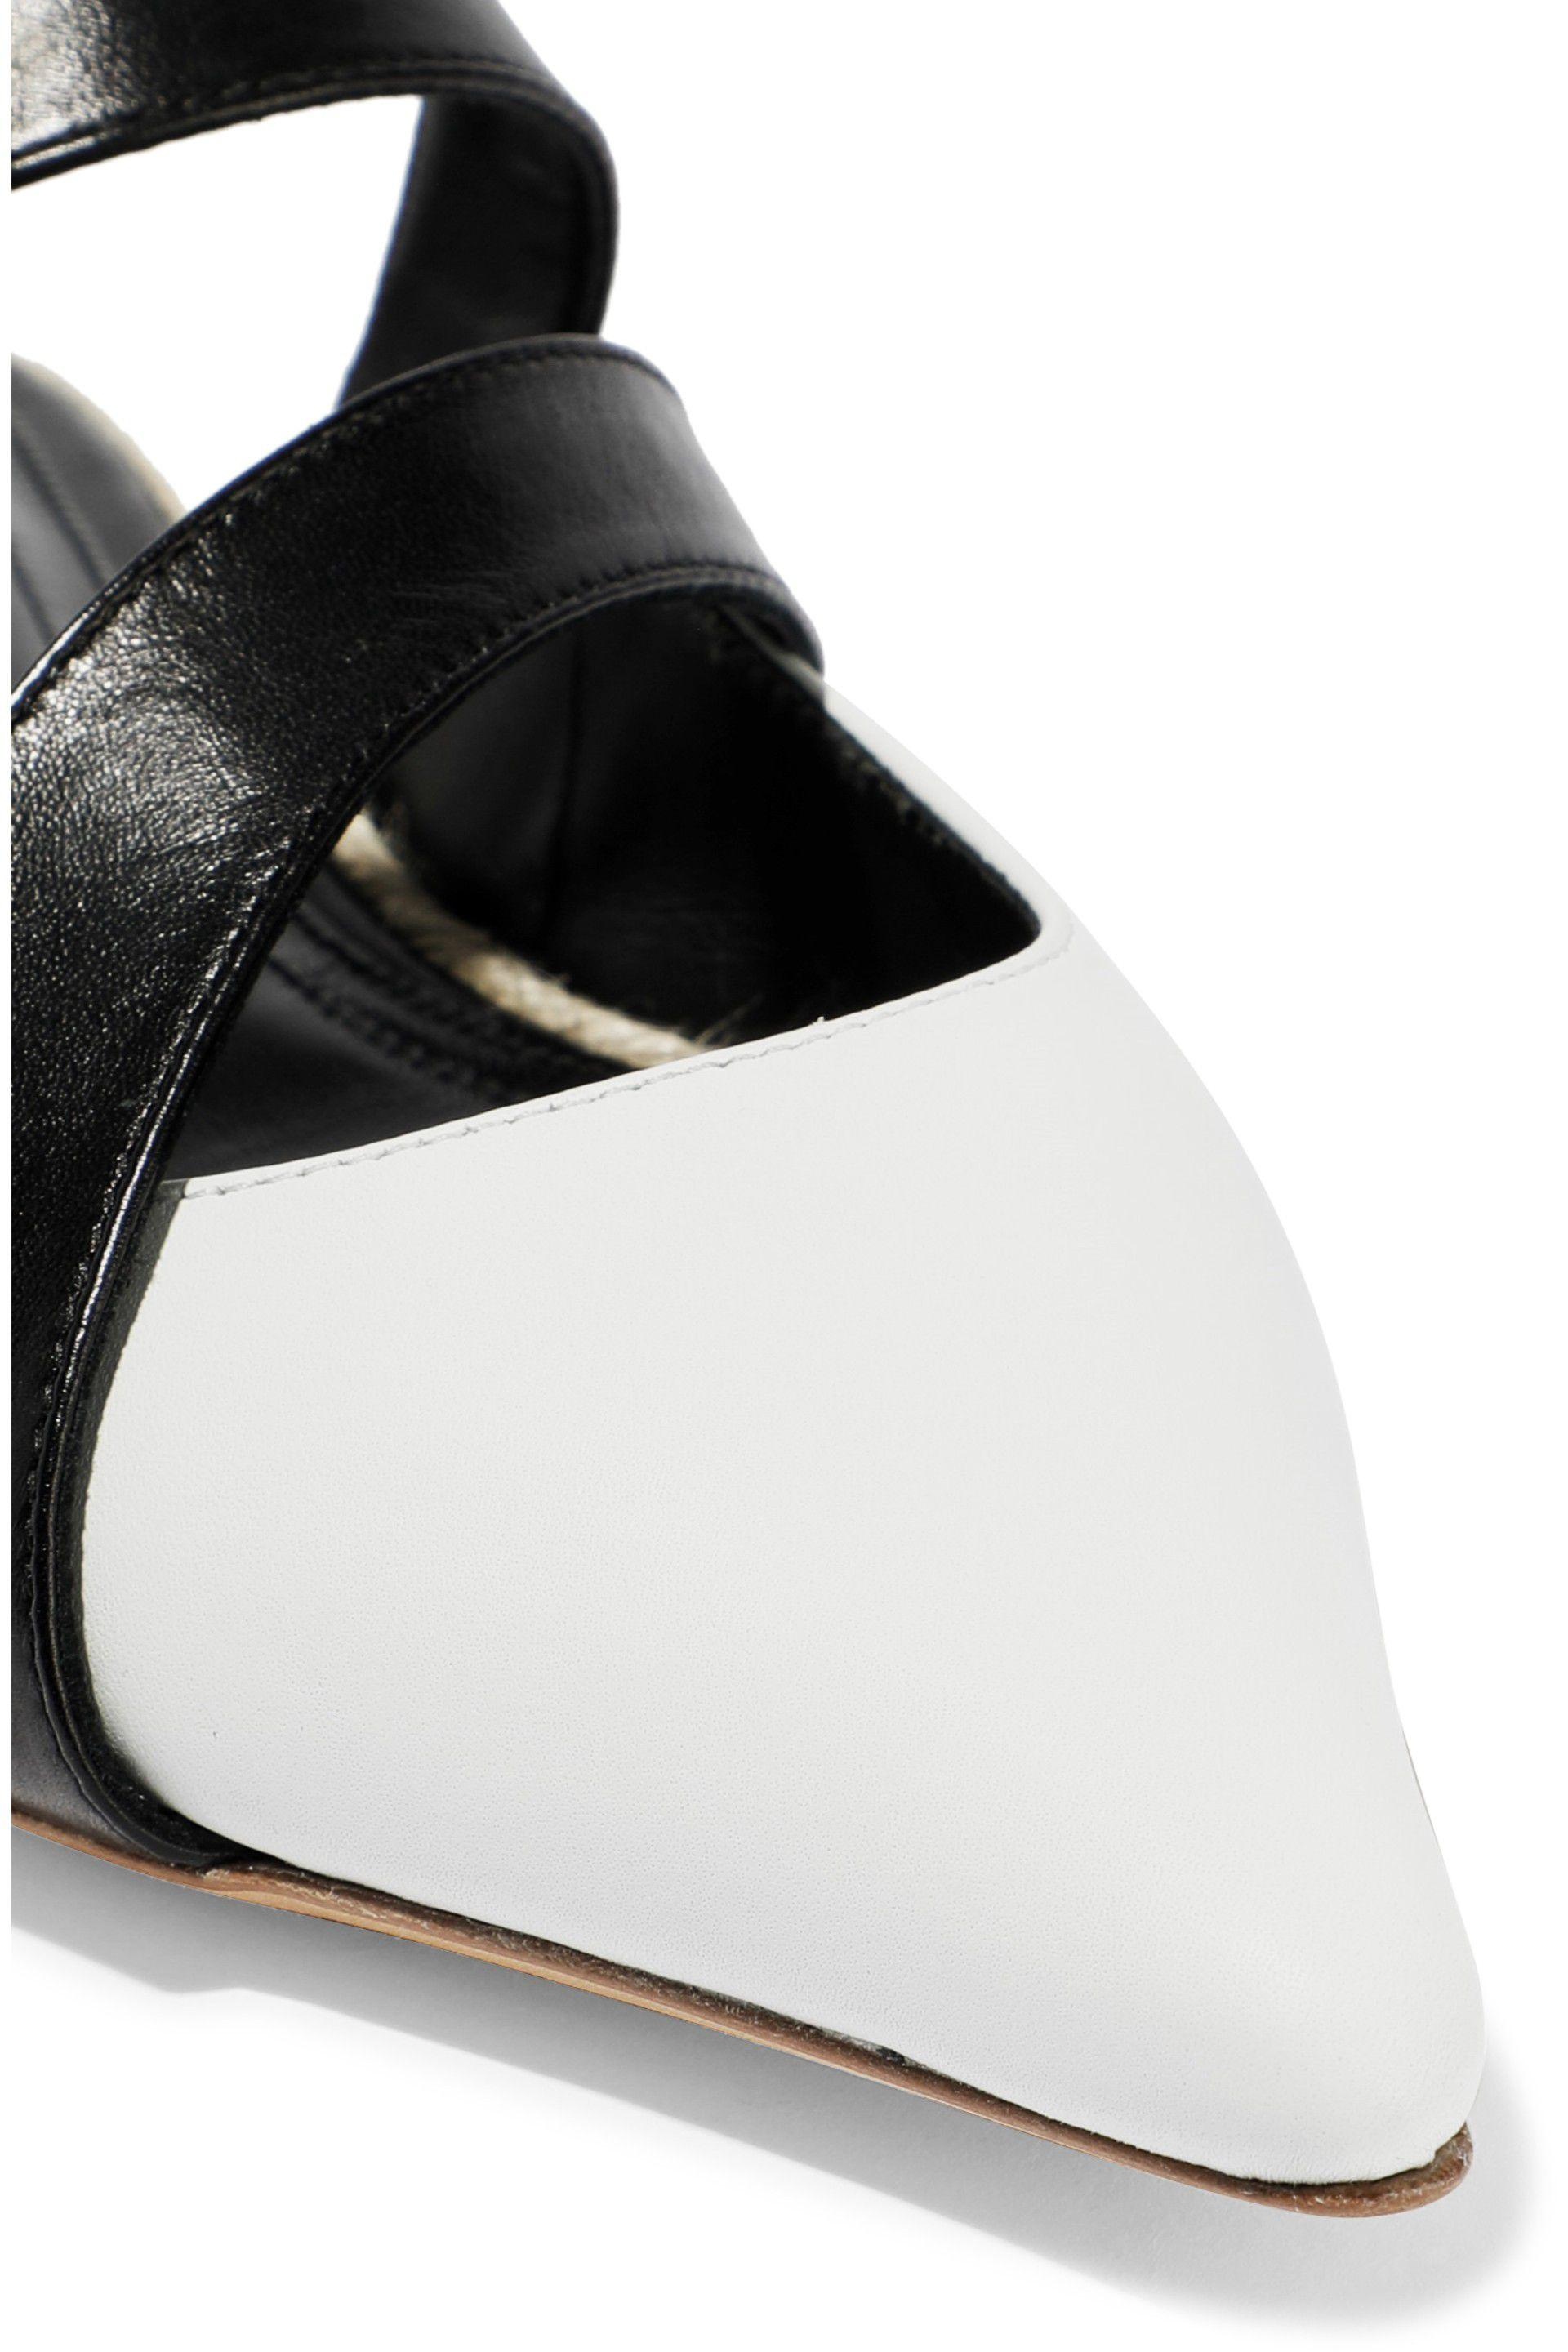 ed2156c2c J.W. Anderson - Two-tone Leather Slippers White - Lyst. View fullscreen